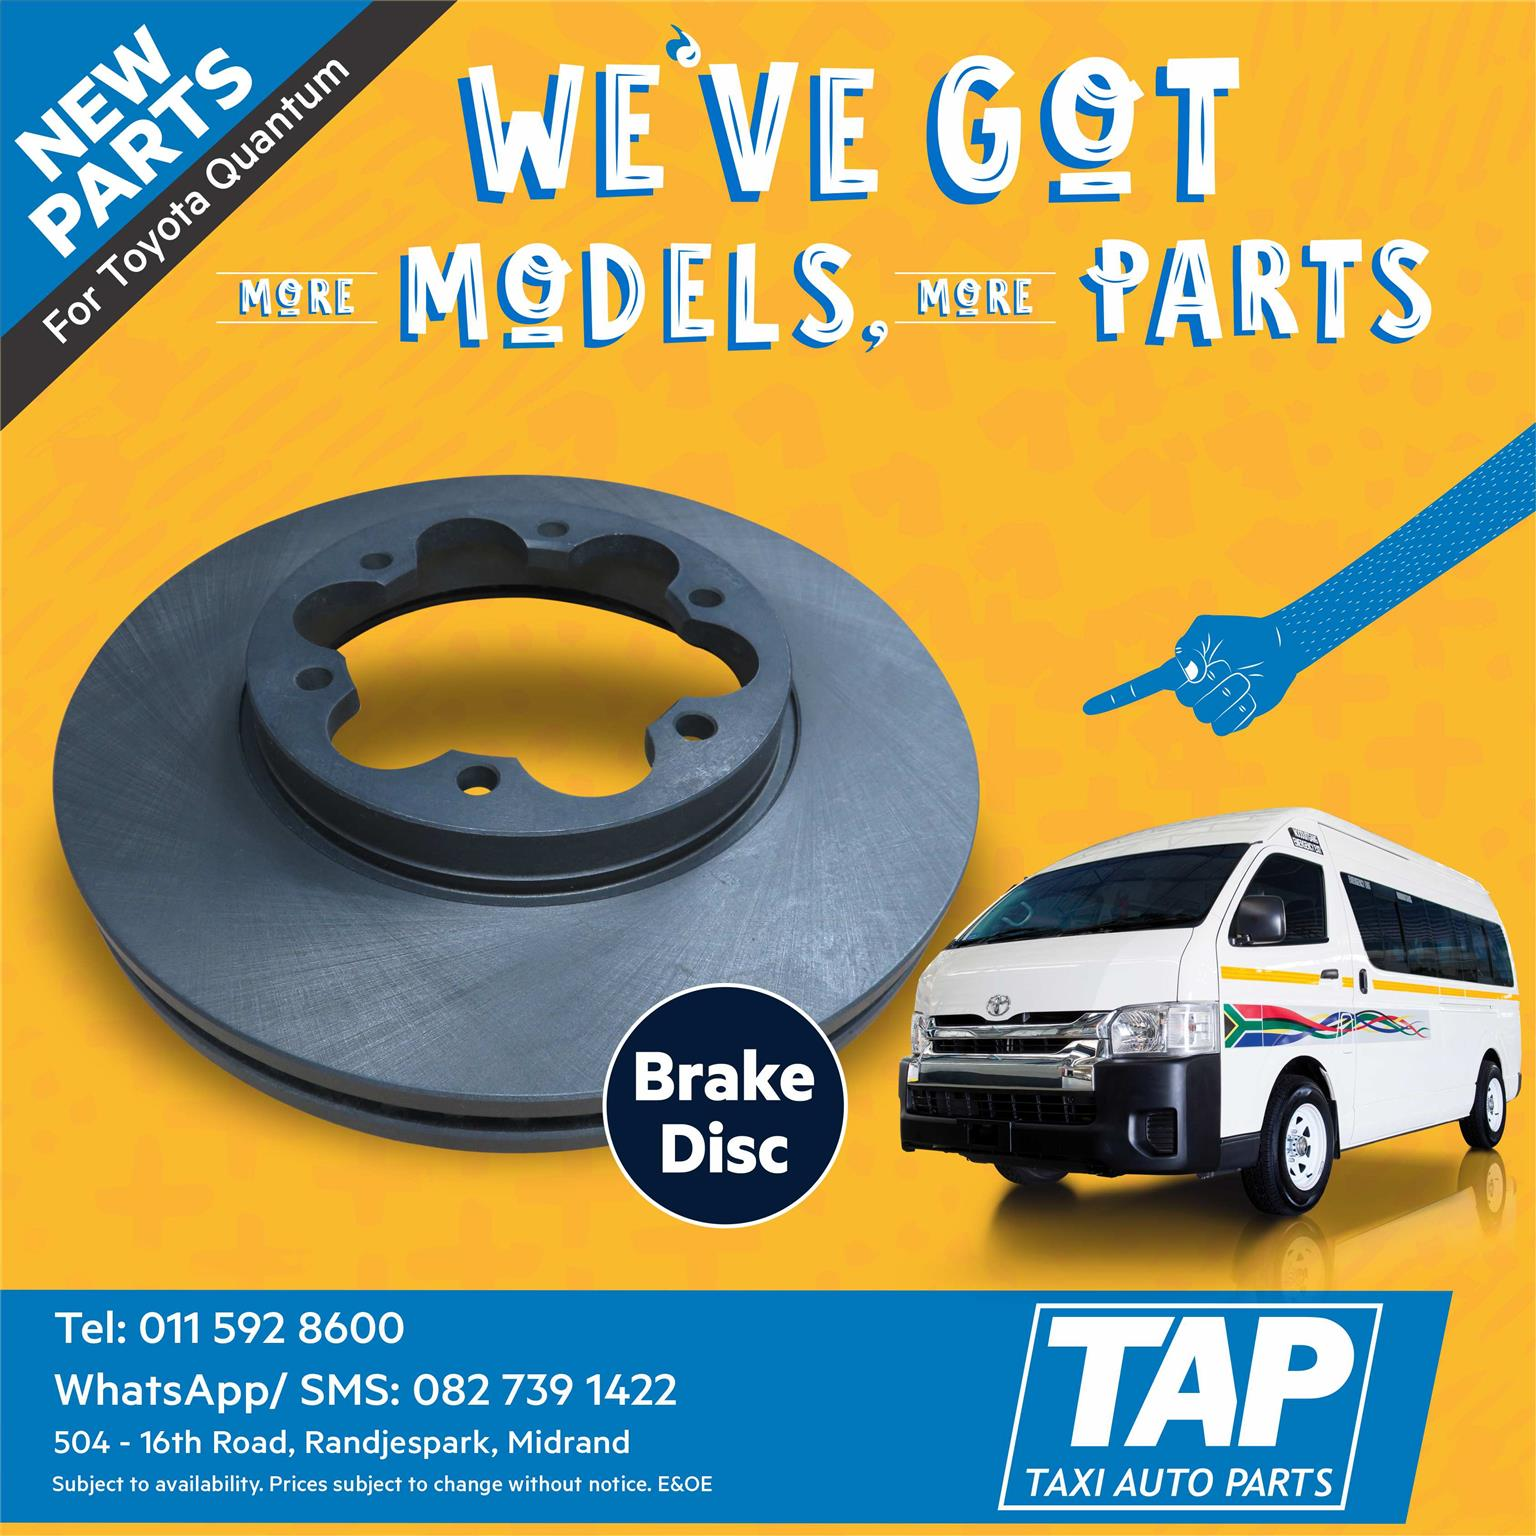 NEW Brake Disc for Toyota Quantum - Taxi Auto Parts - TAP